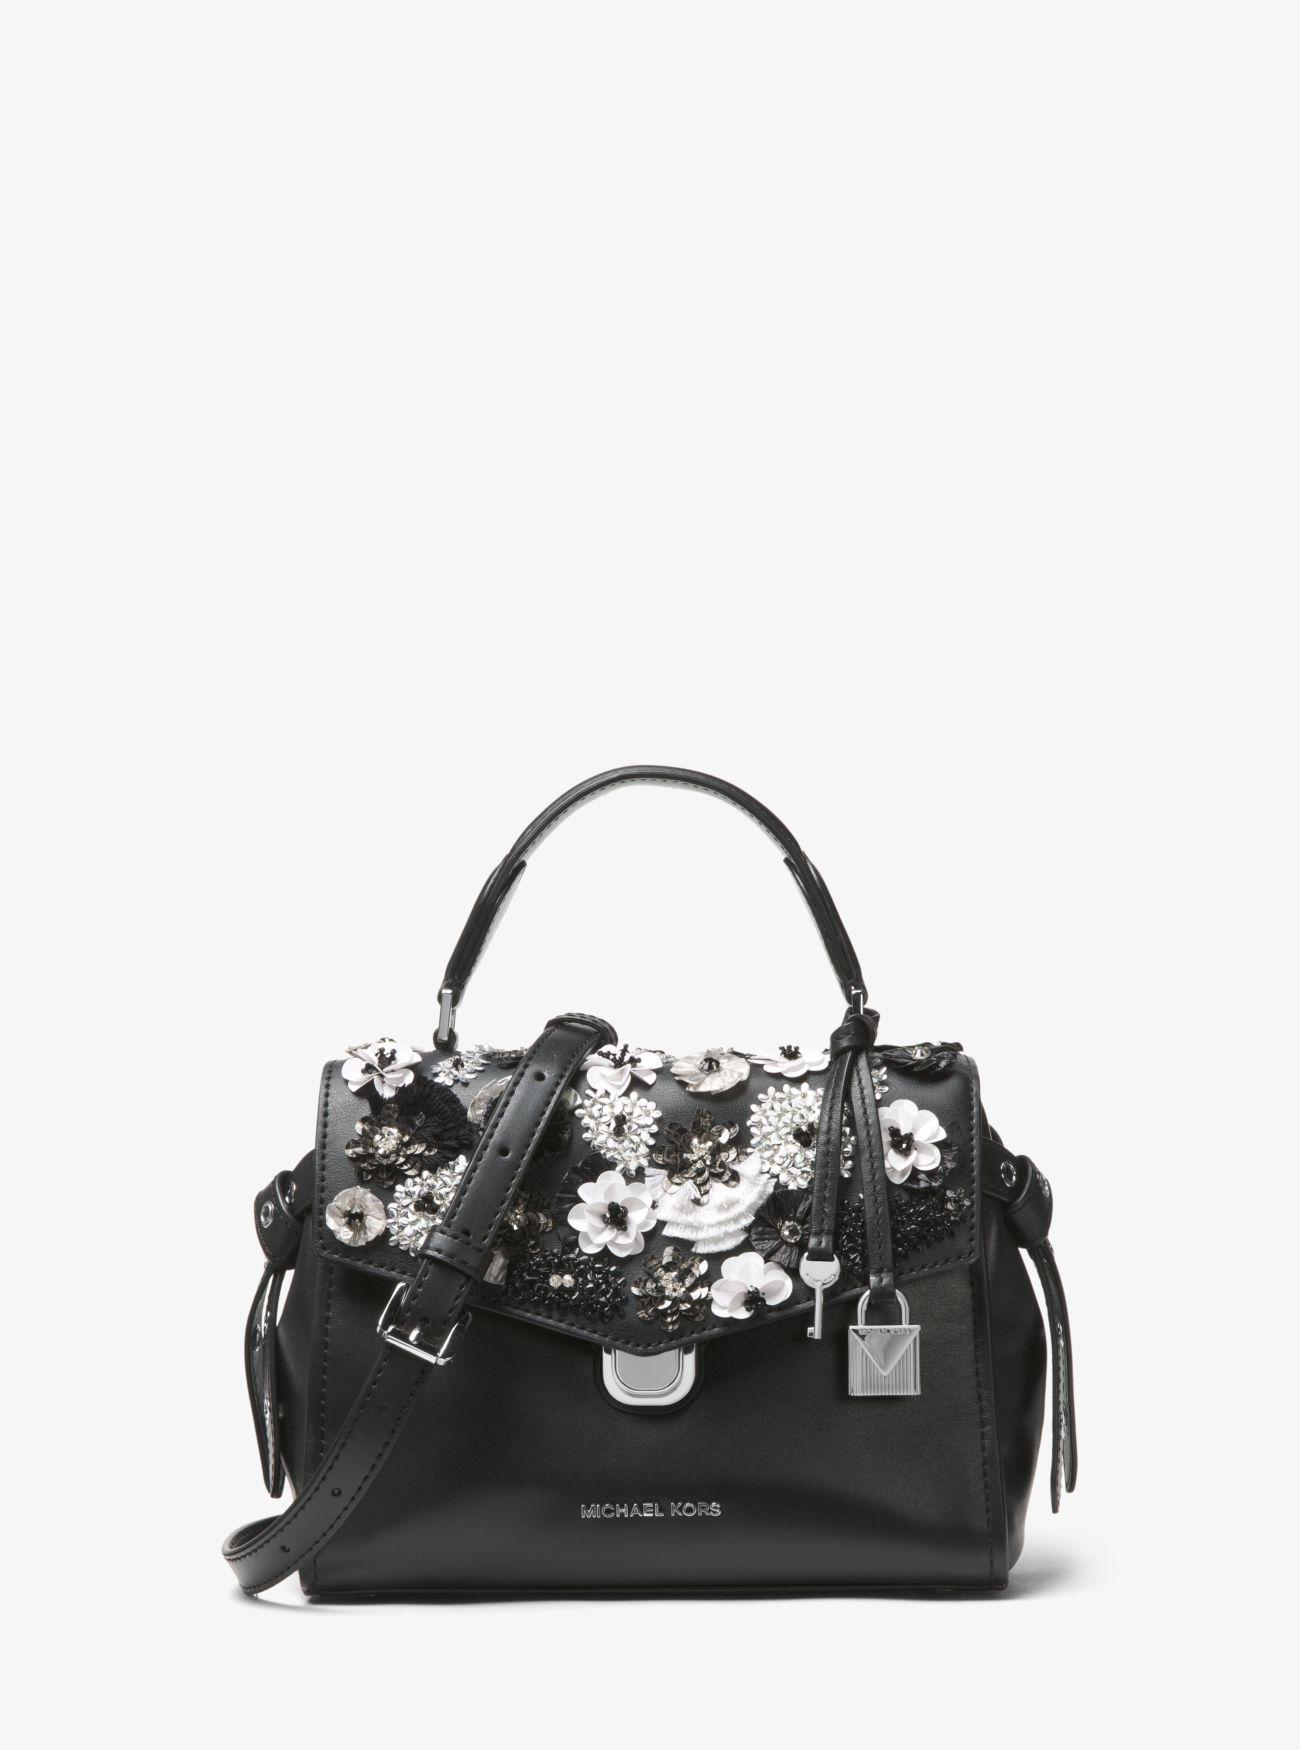 c1032bcb473cb3 Michael Kors Bristol Small Floral Sequined Leather Satchel in Black ...